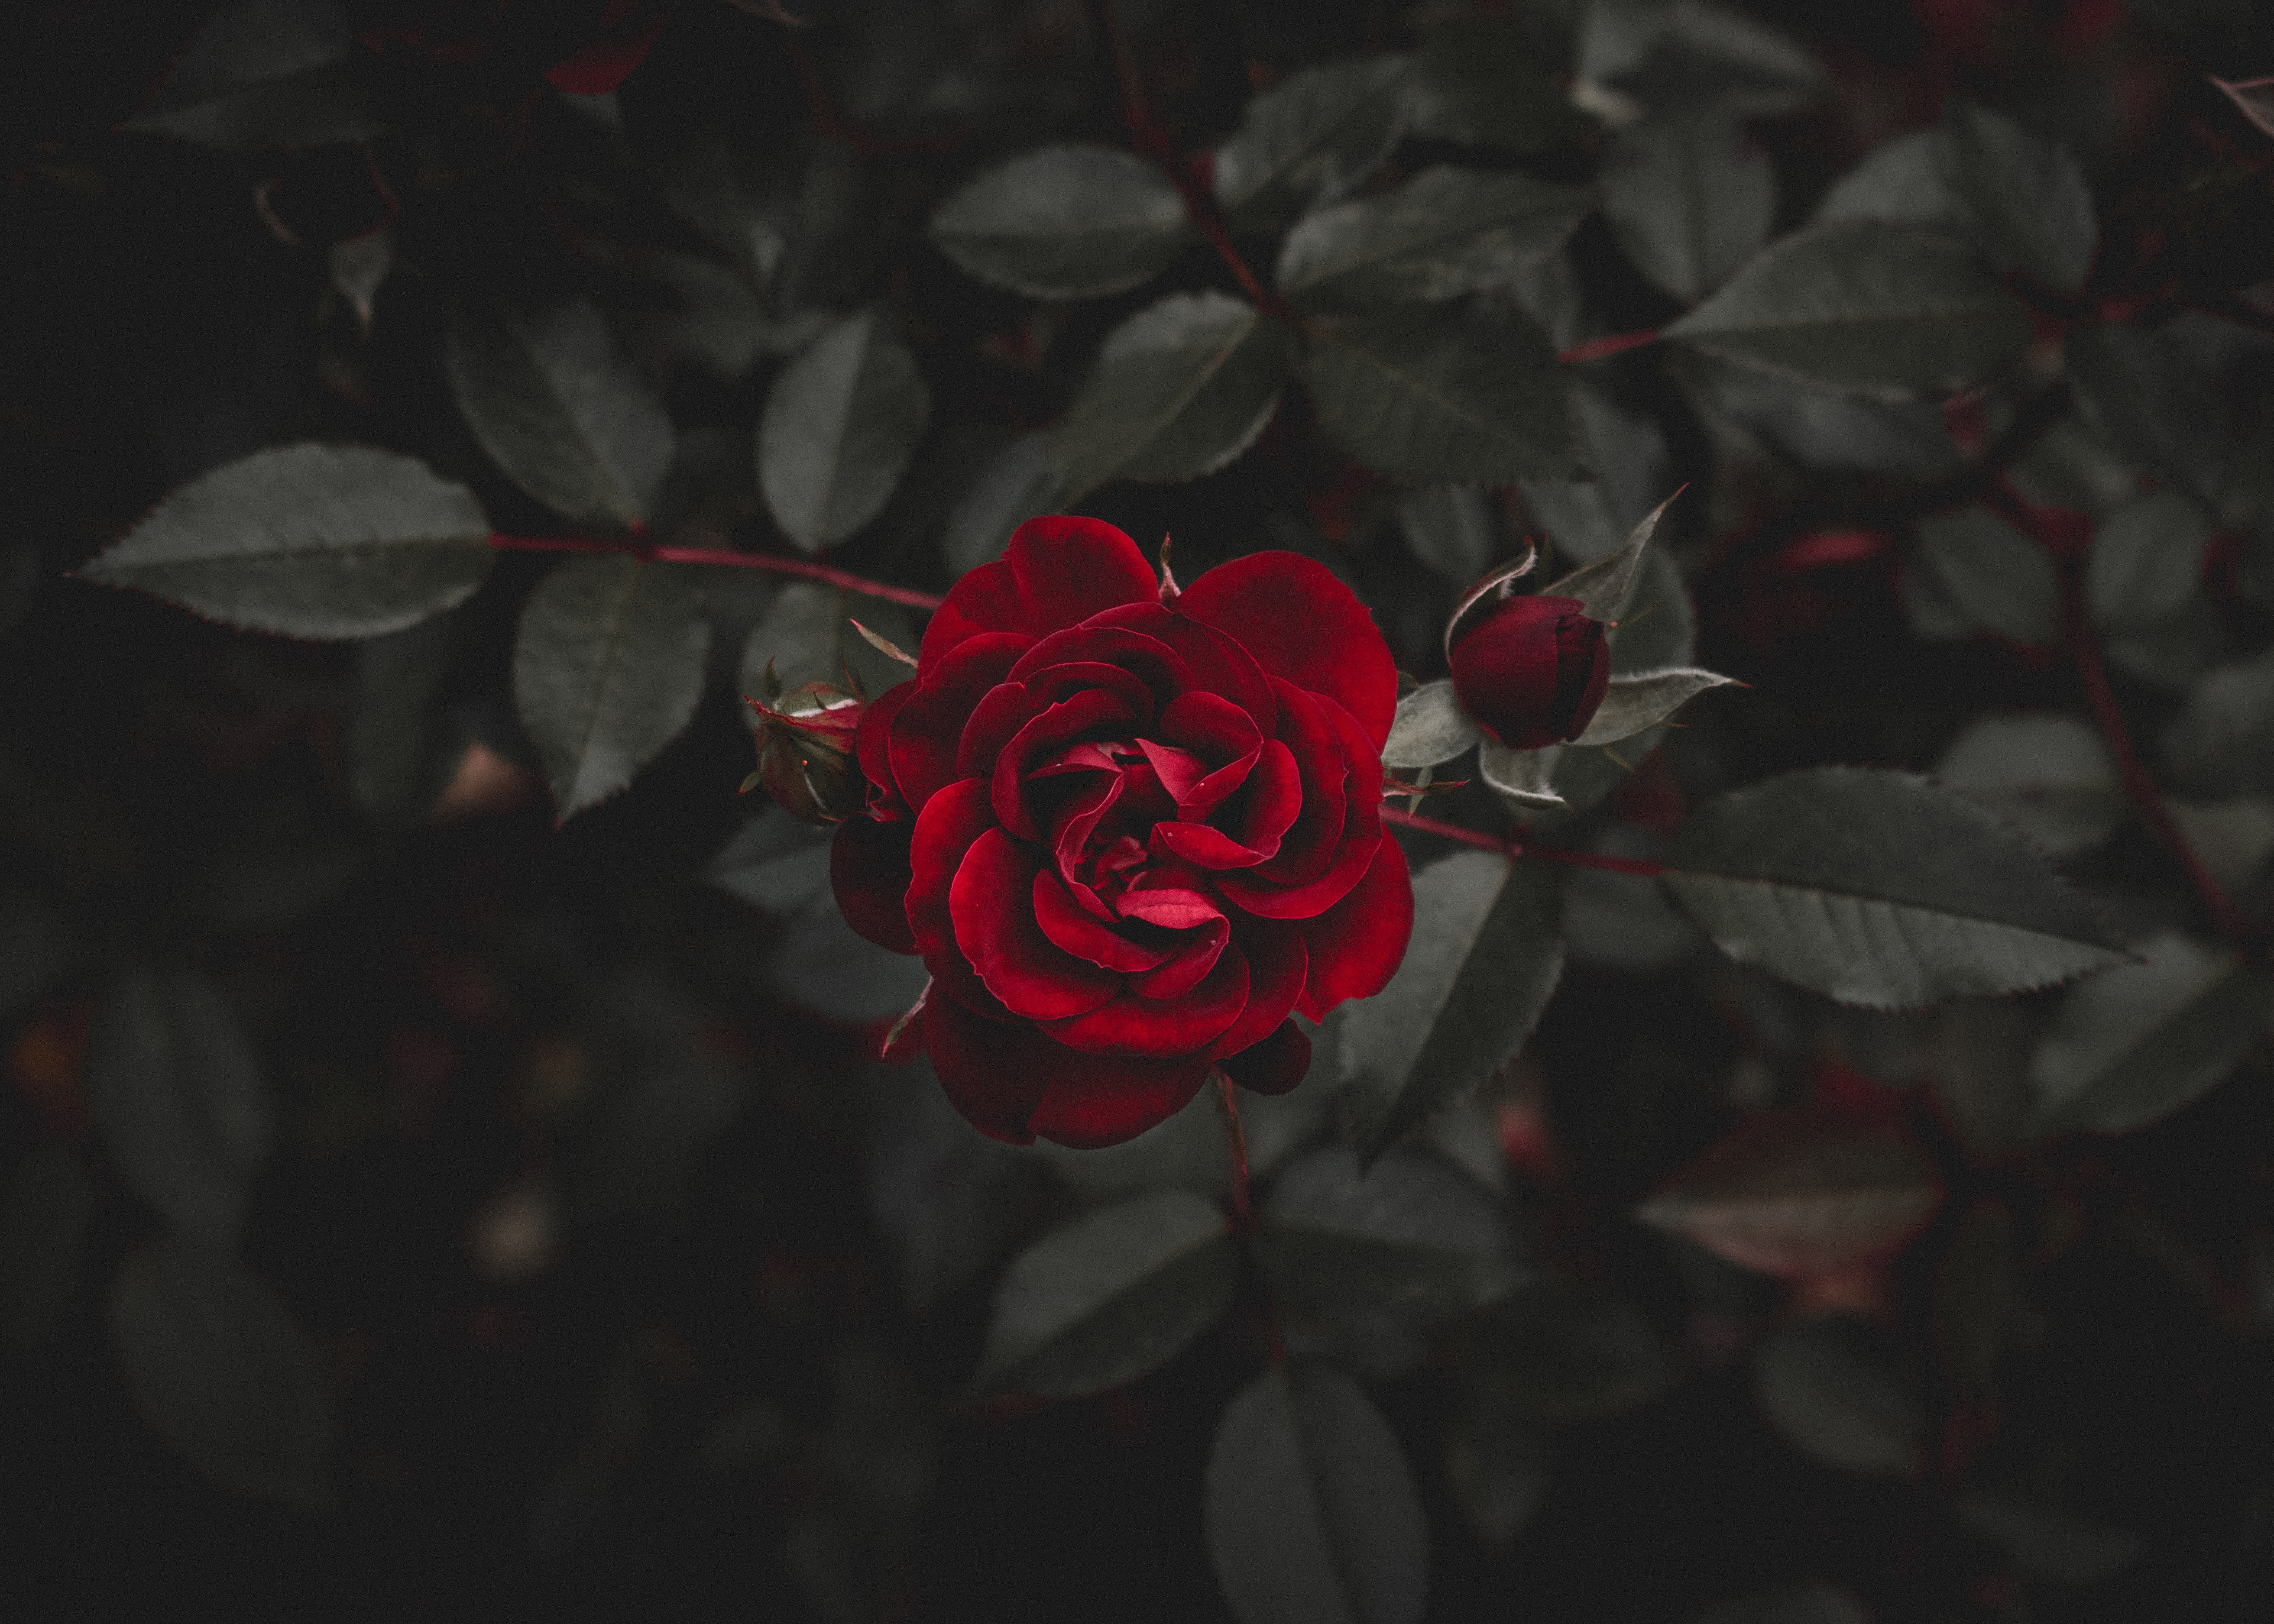 116984 download wallpaper Flowers, Flower, Rose Flower, Rose, Bud screensavers and pictures for free